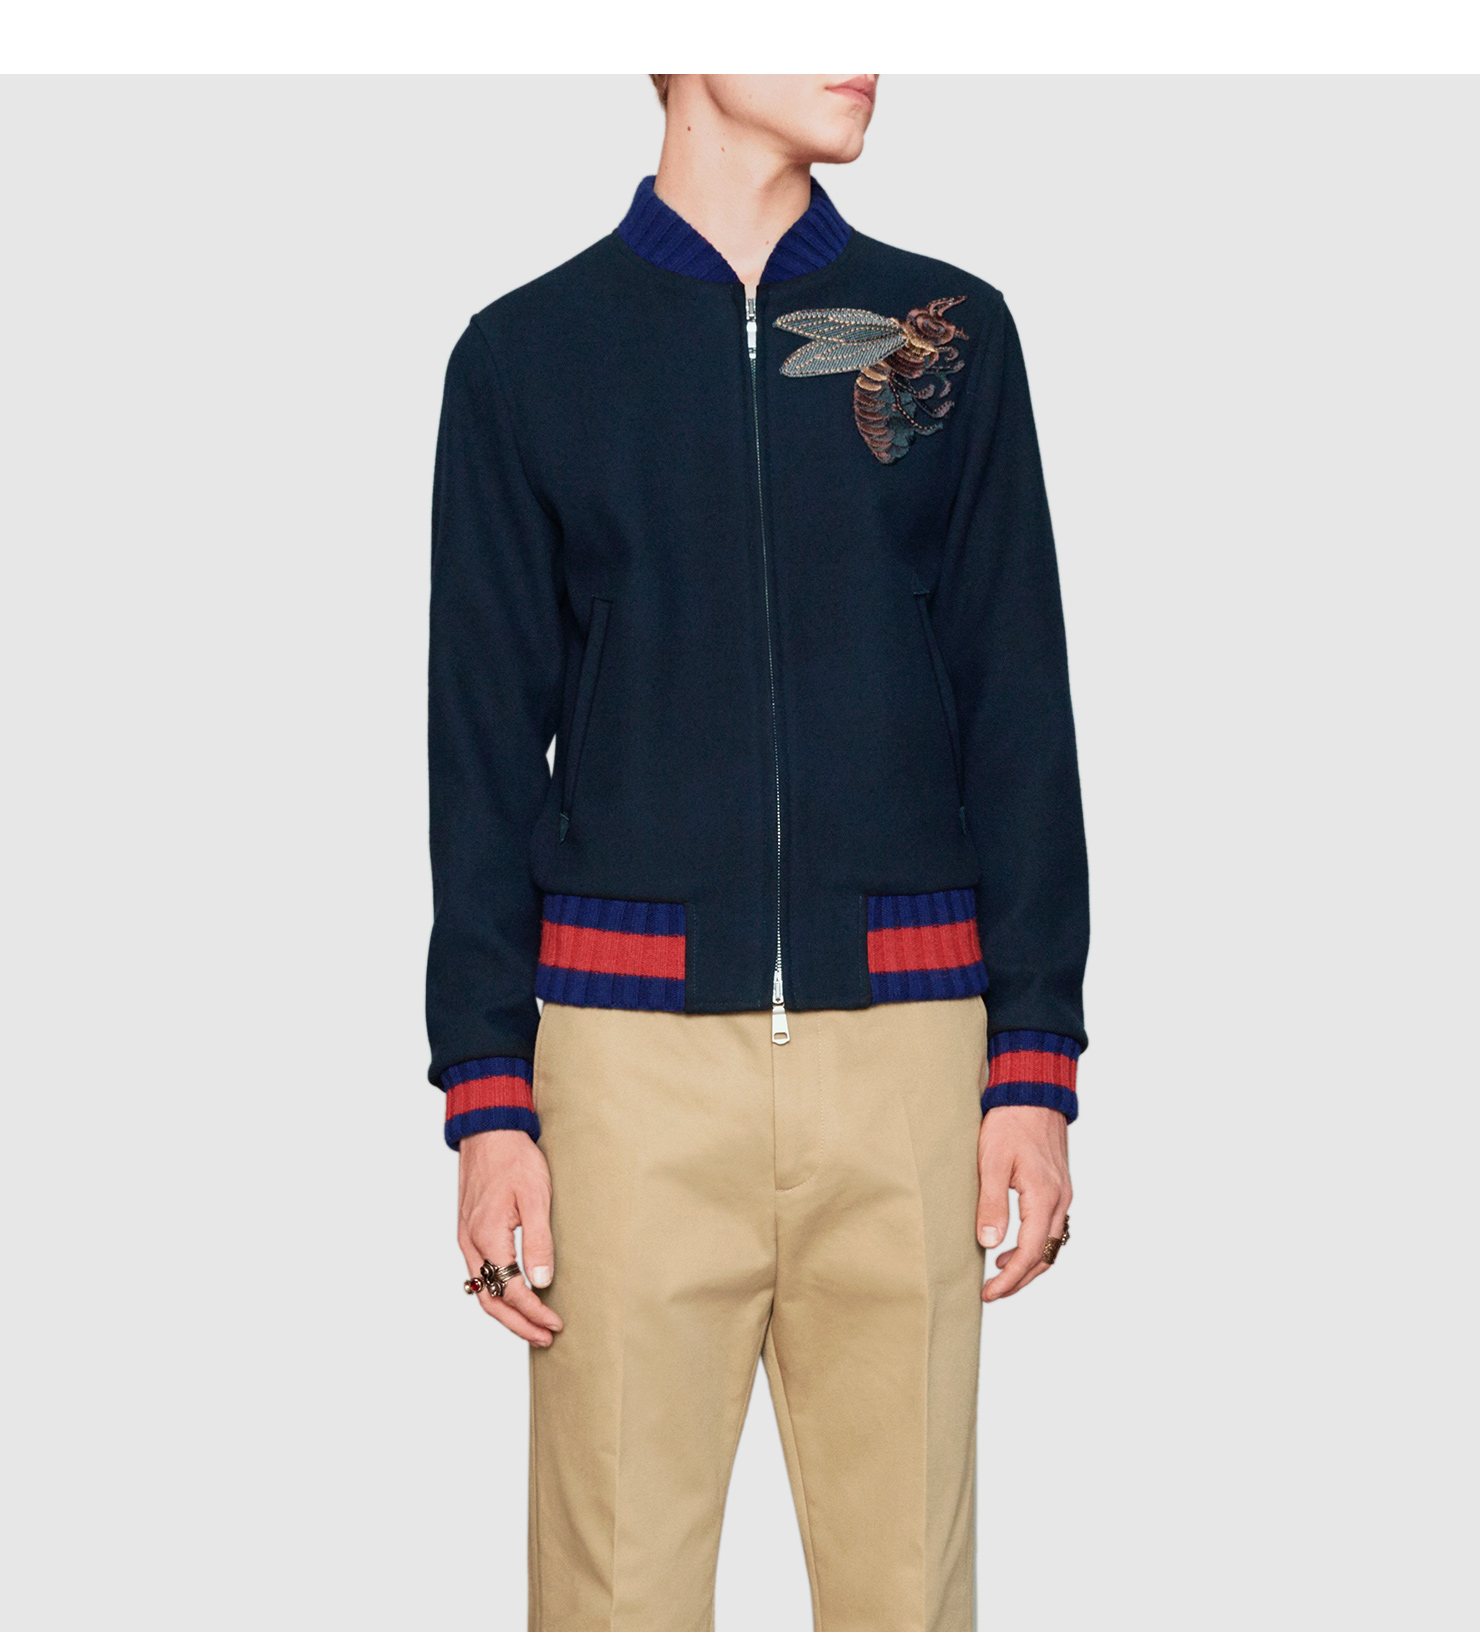 640ed9e02 Gucci Wool Bomber Jacket With Bee Appliqué in Blue for Men - Lyst